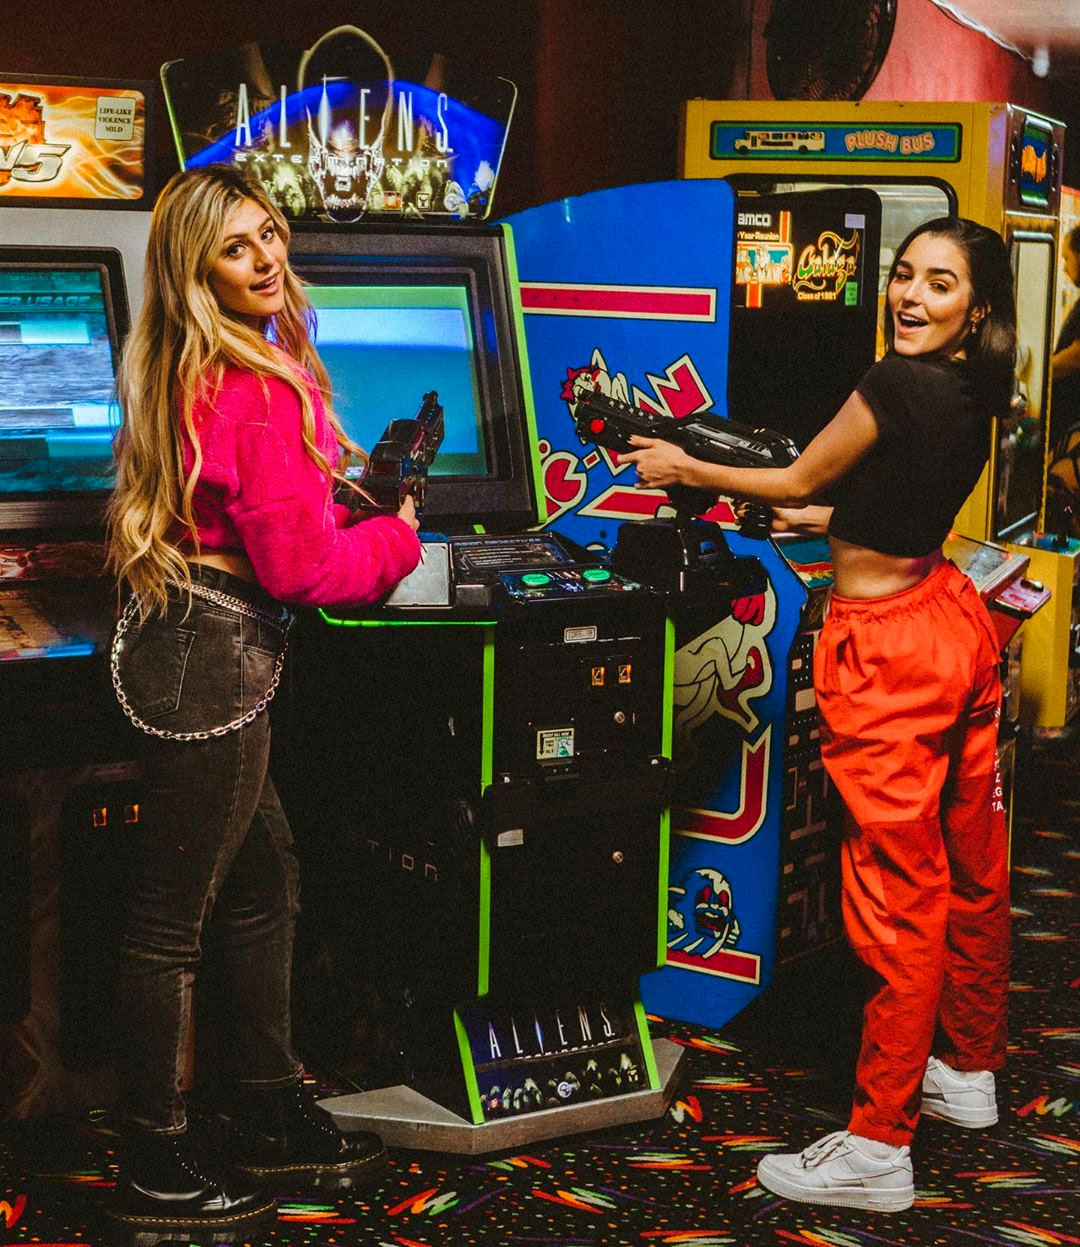 Indiana Massara and Casey Baer at the Moonlight Rollerway's arcade